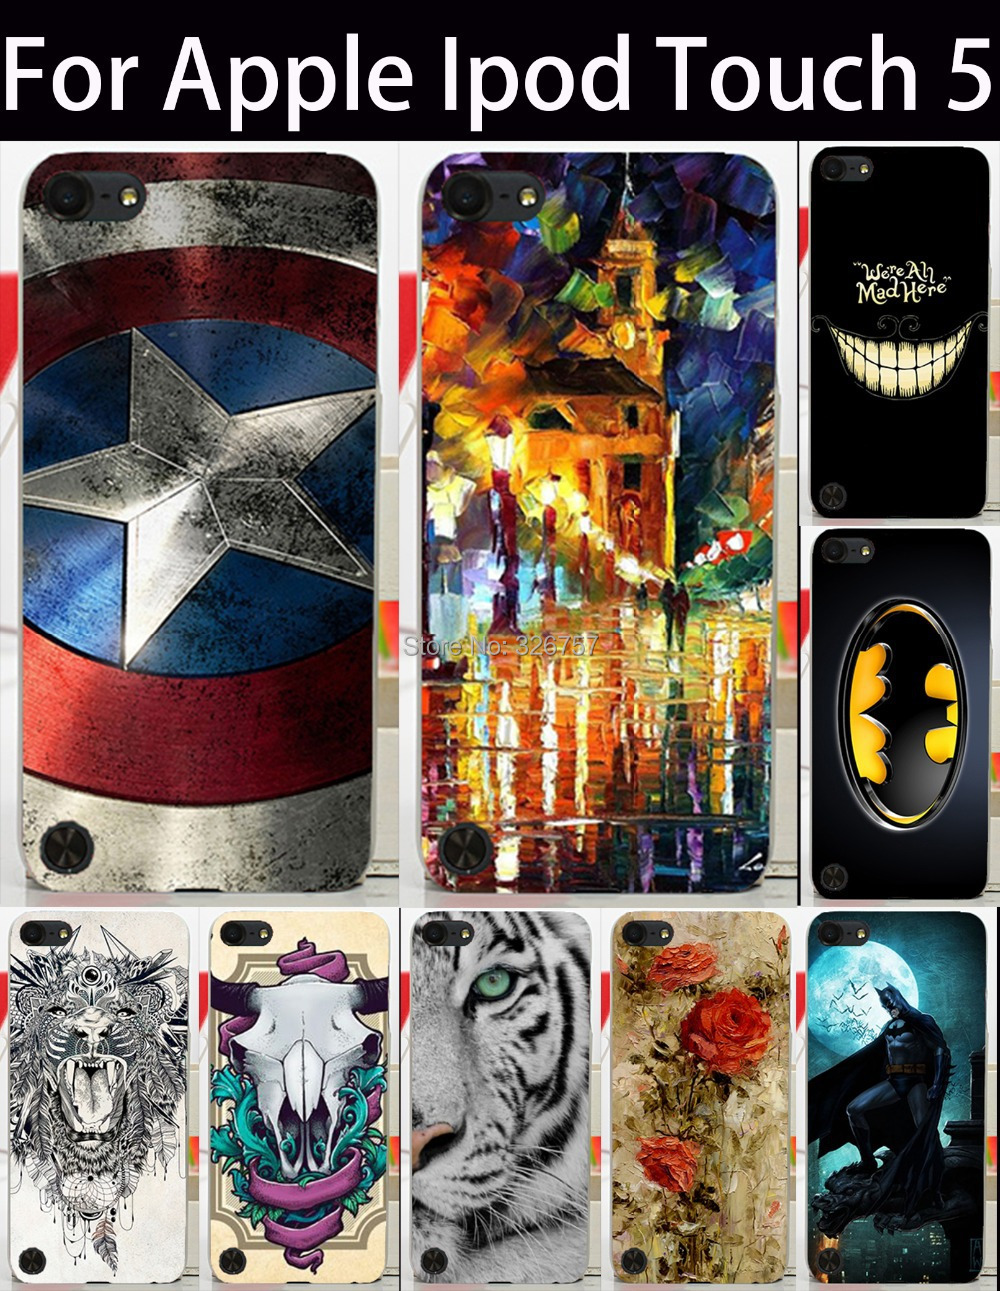 New DIY Captain America Paint Street Flower One Piece BatMan Goats Animal Tiger Cute mobile phone Case for Apple iPod Touch 5(China (Mainland))